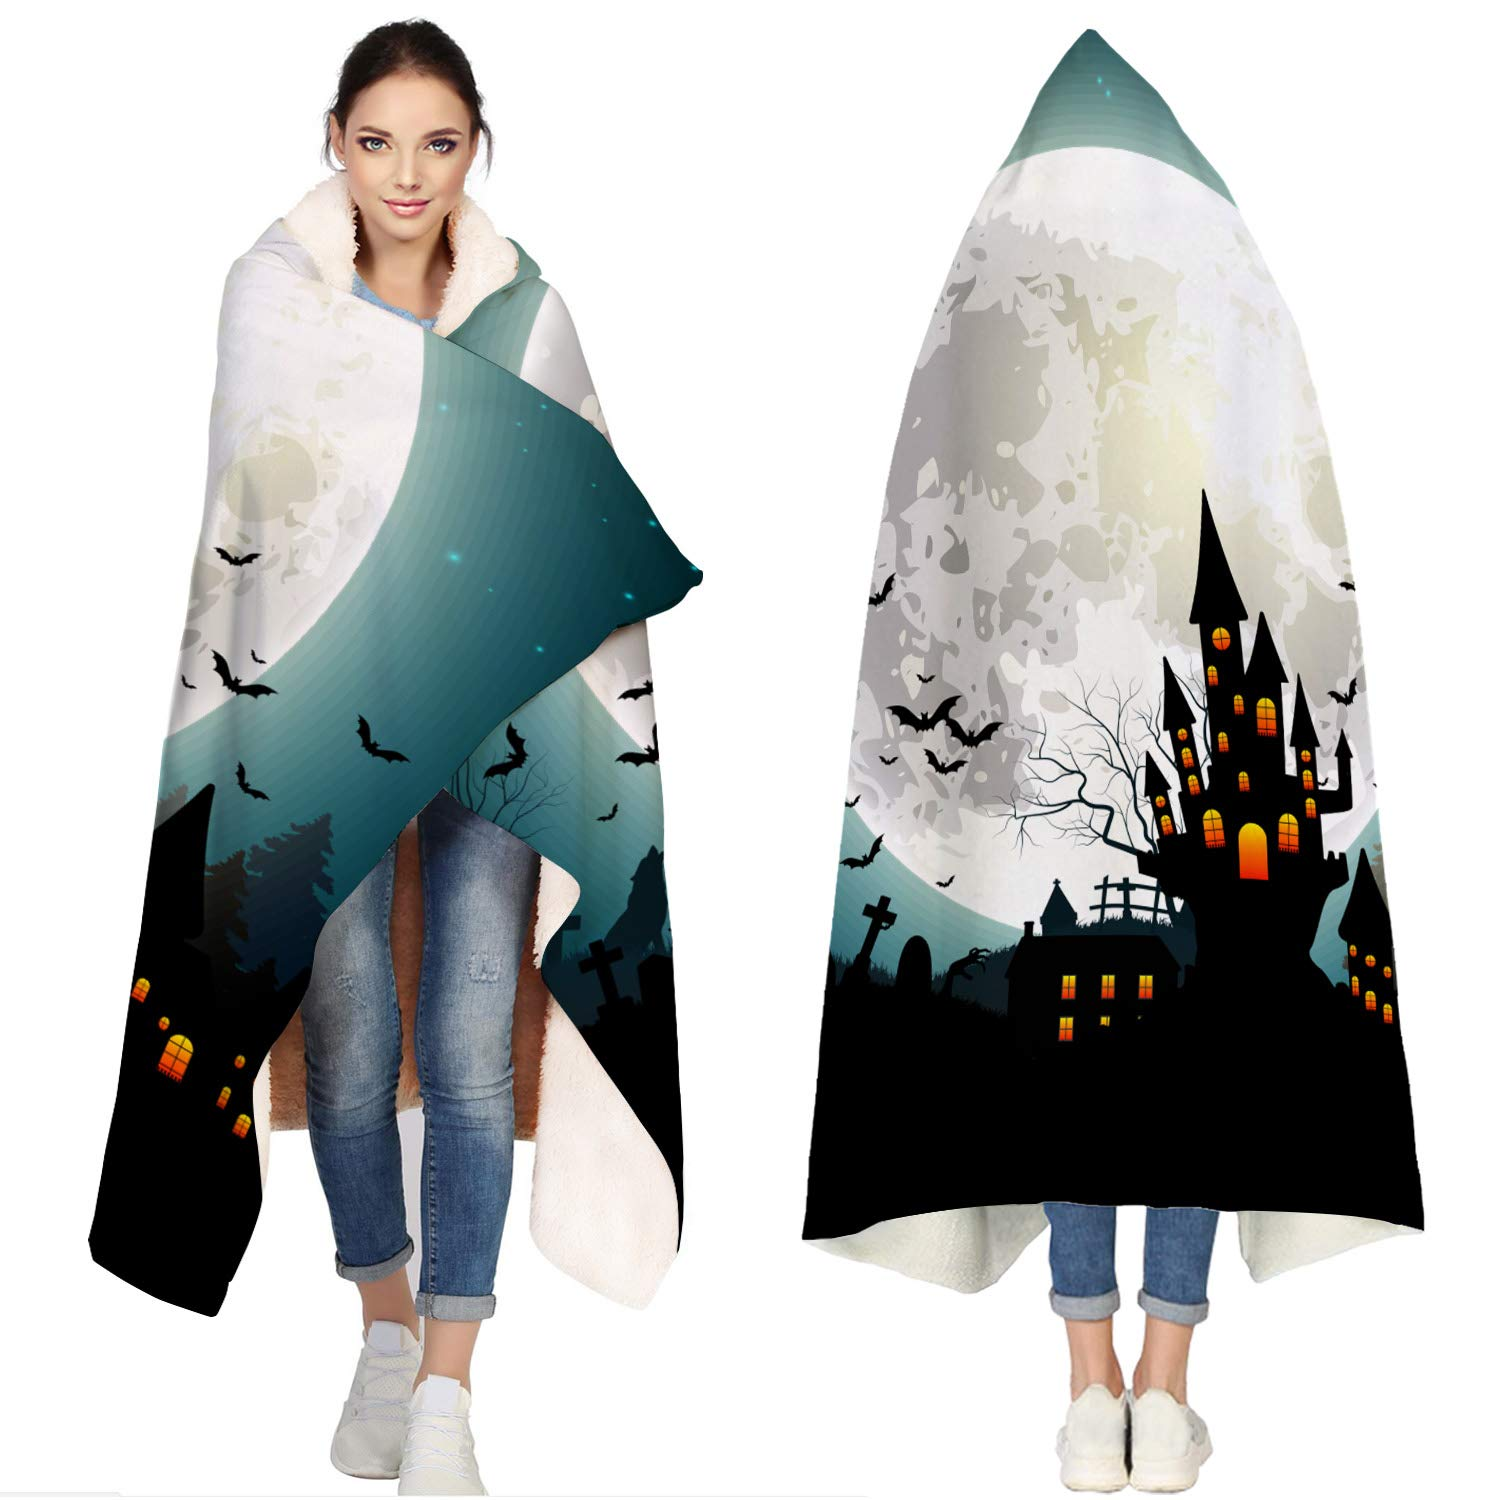 SUN-Shine Happy Halloween Sherpa Hooded Blanket, Wrap Soft Flannel Fleece Wearable Throw Hoodie Blankets for Kids Adults Girls Boys, Full Moon Haunted House and Bats by SUN-Shine